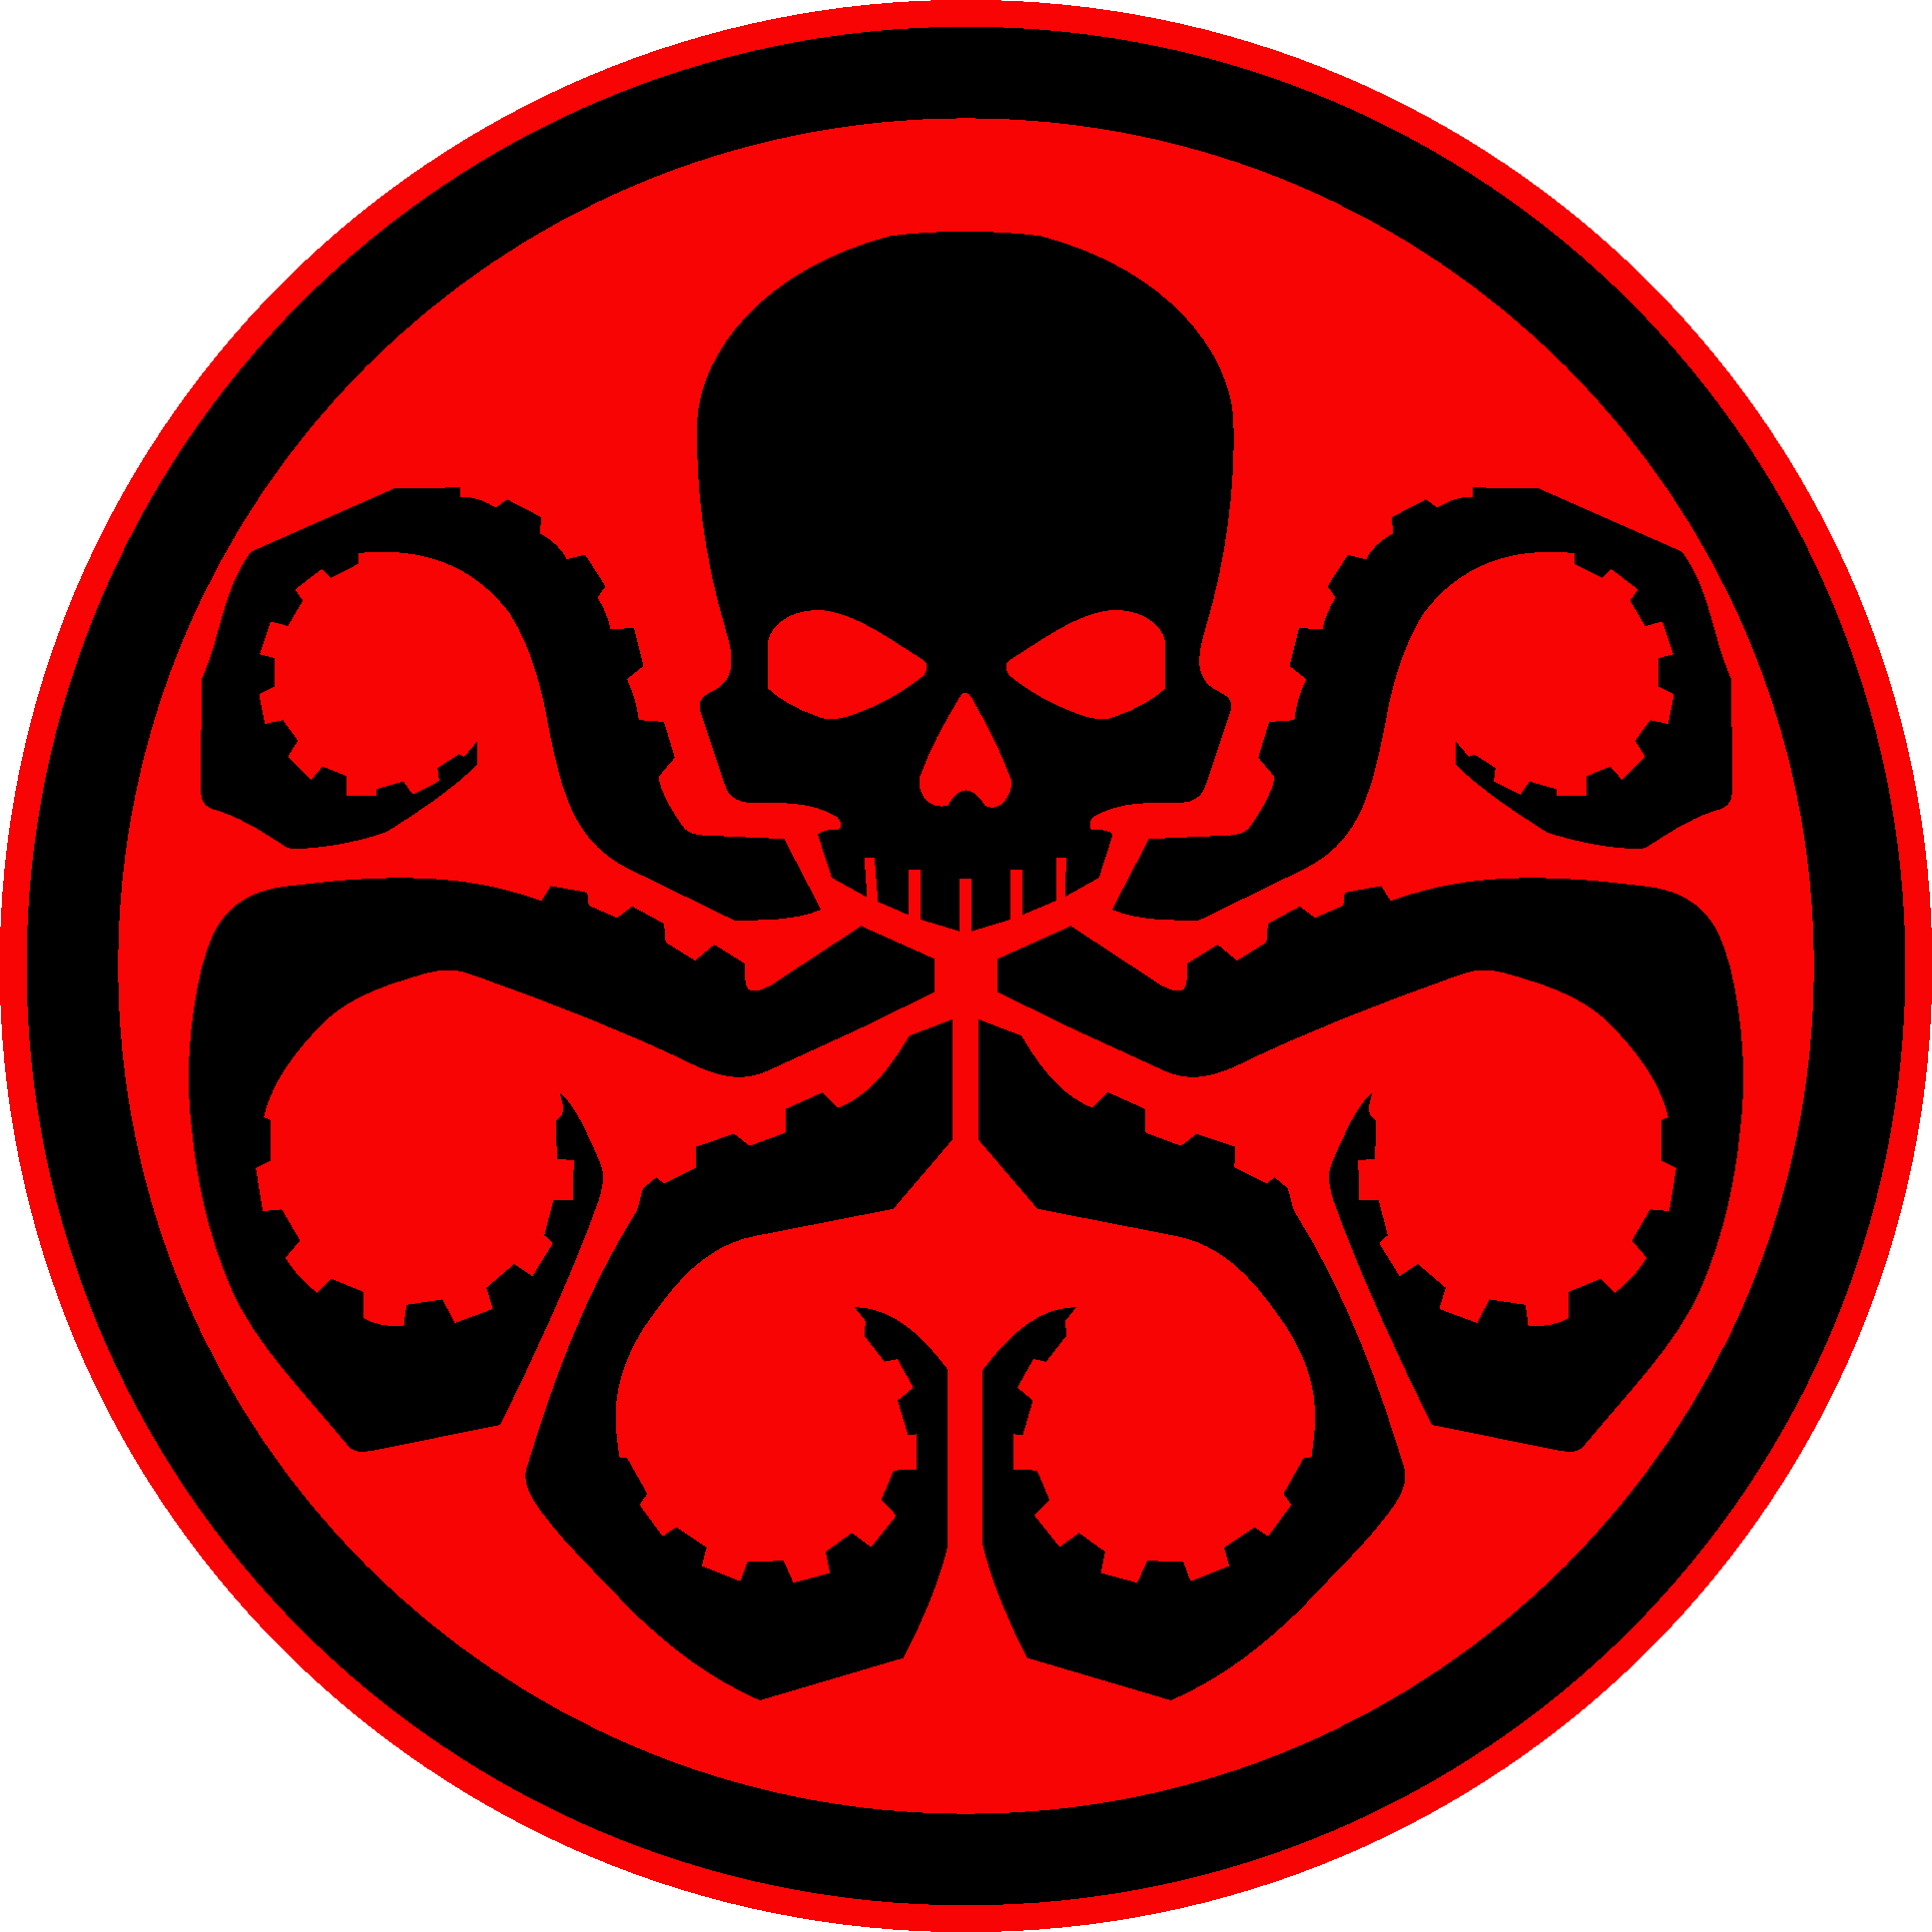 Hydra Marvel Cinematic Universe Wiki Fandom Powered By Wikia